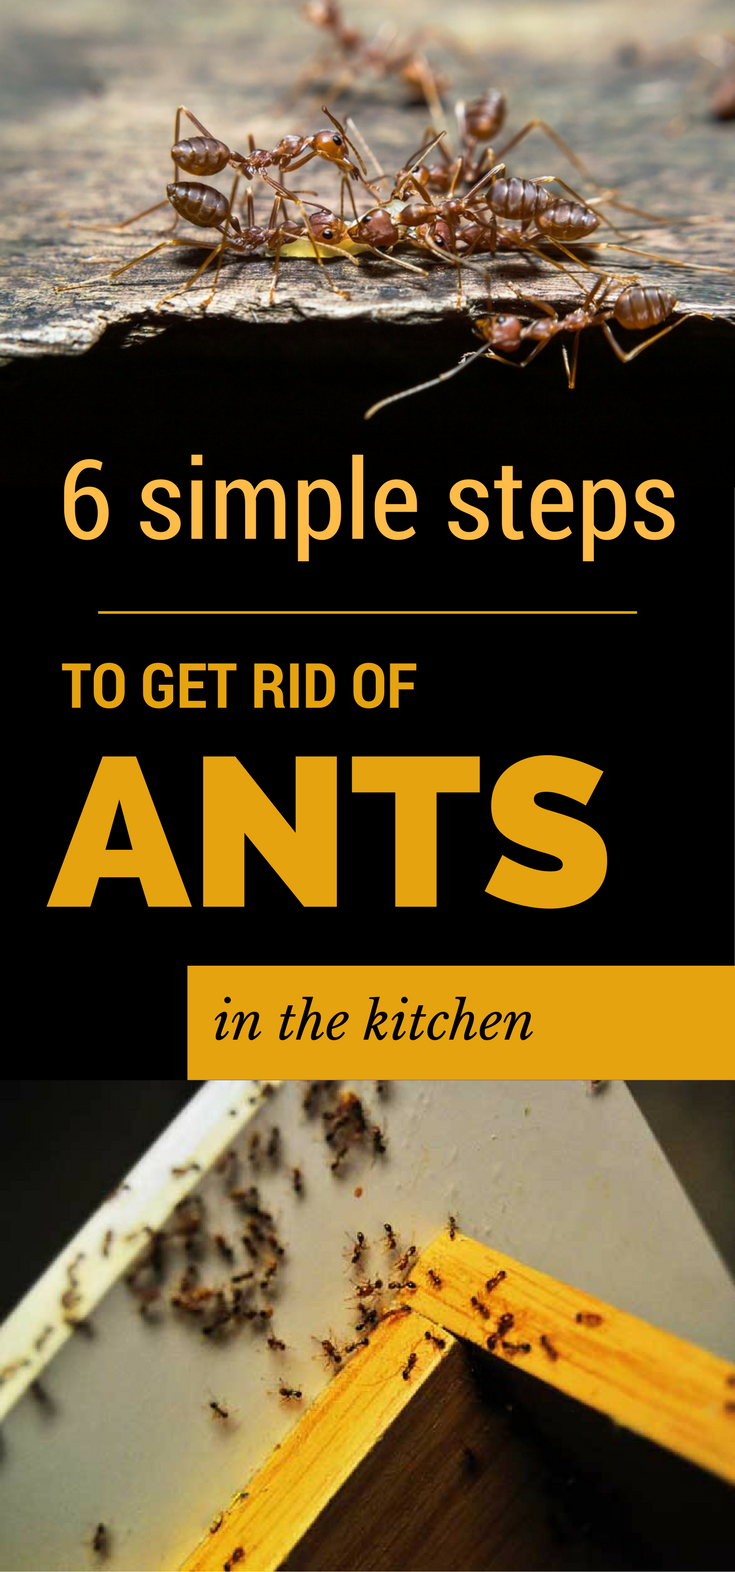 6 Simple Steps To Get Rid Of Ants In The Kitchen